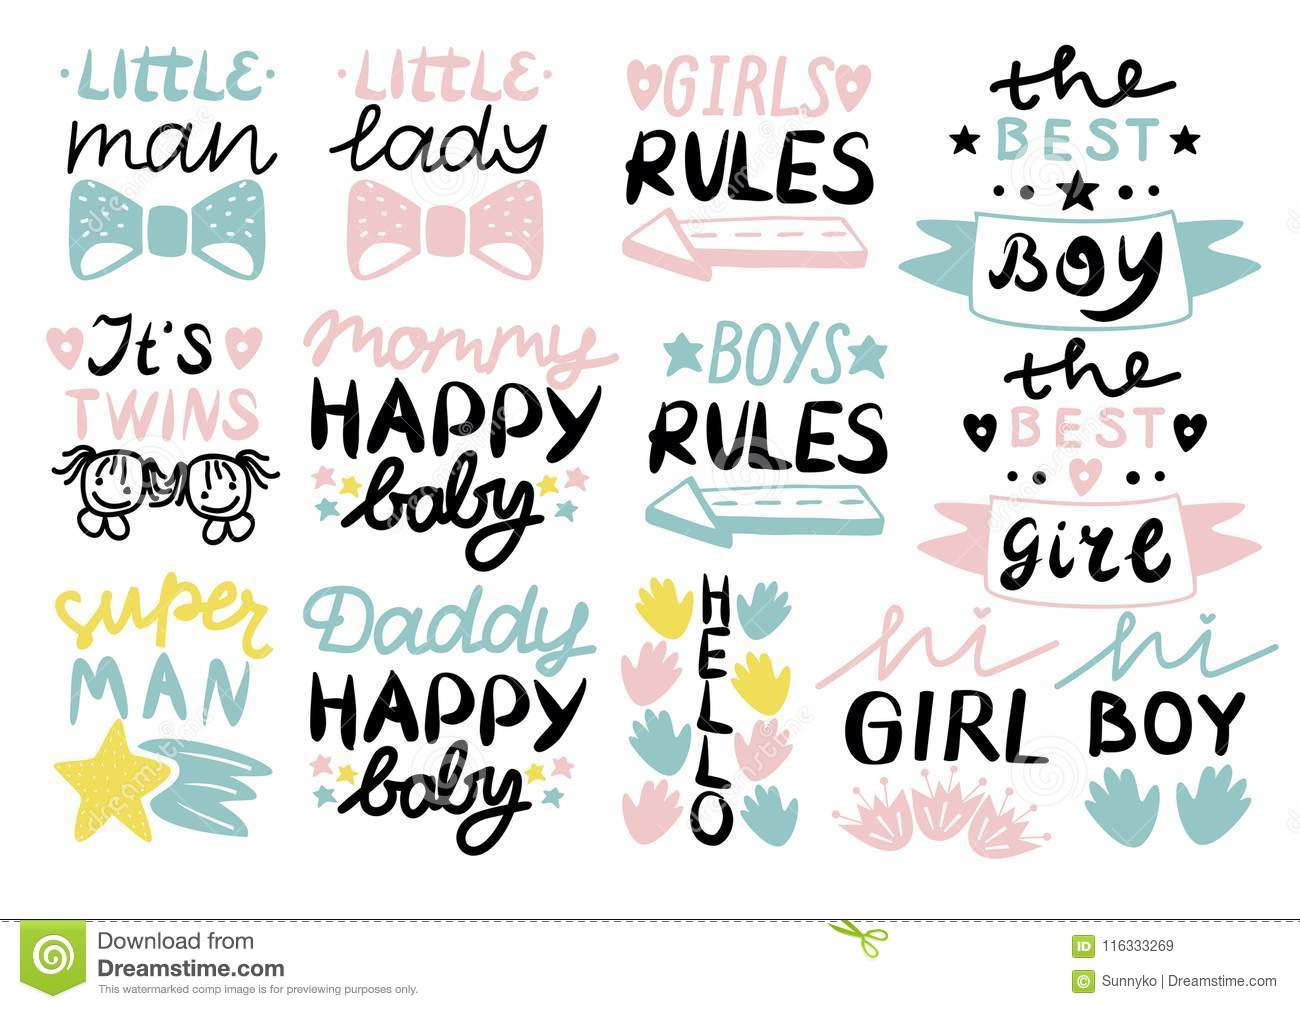 13 Children S Logo With Handwriting Little Man,lady, Girls, Boys